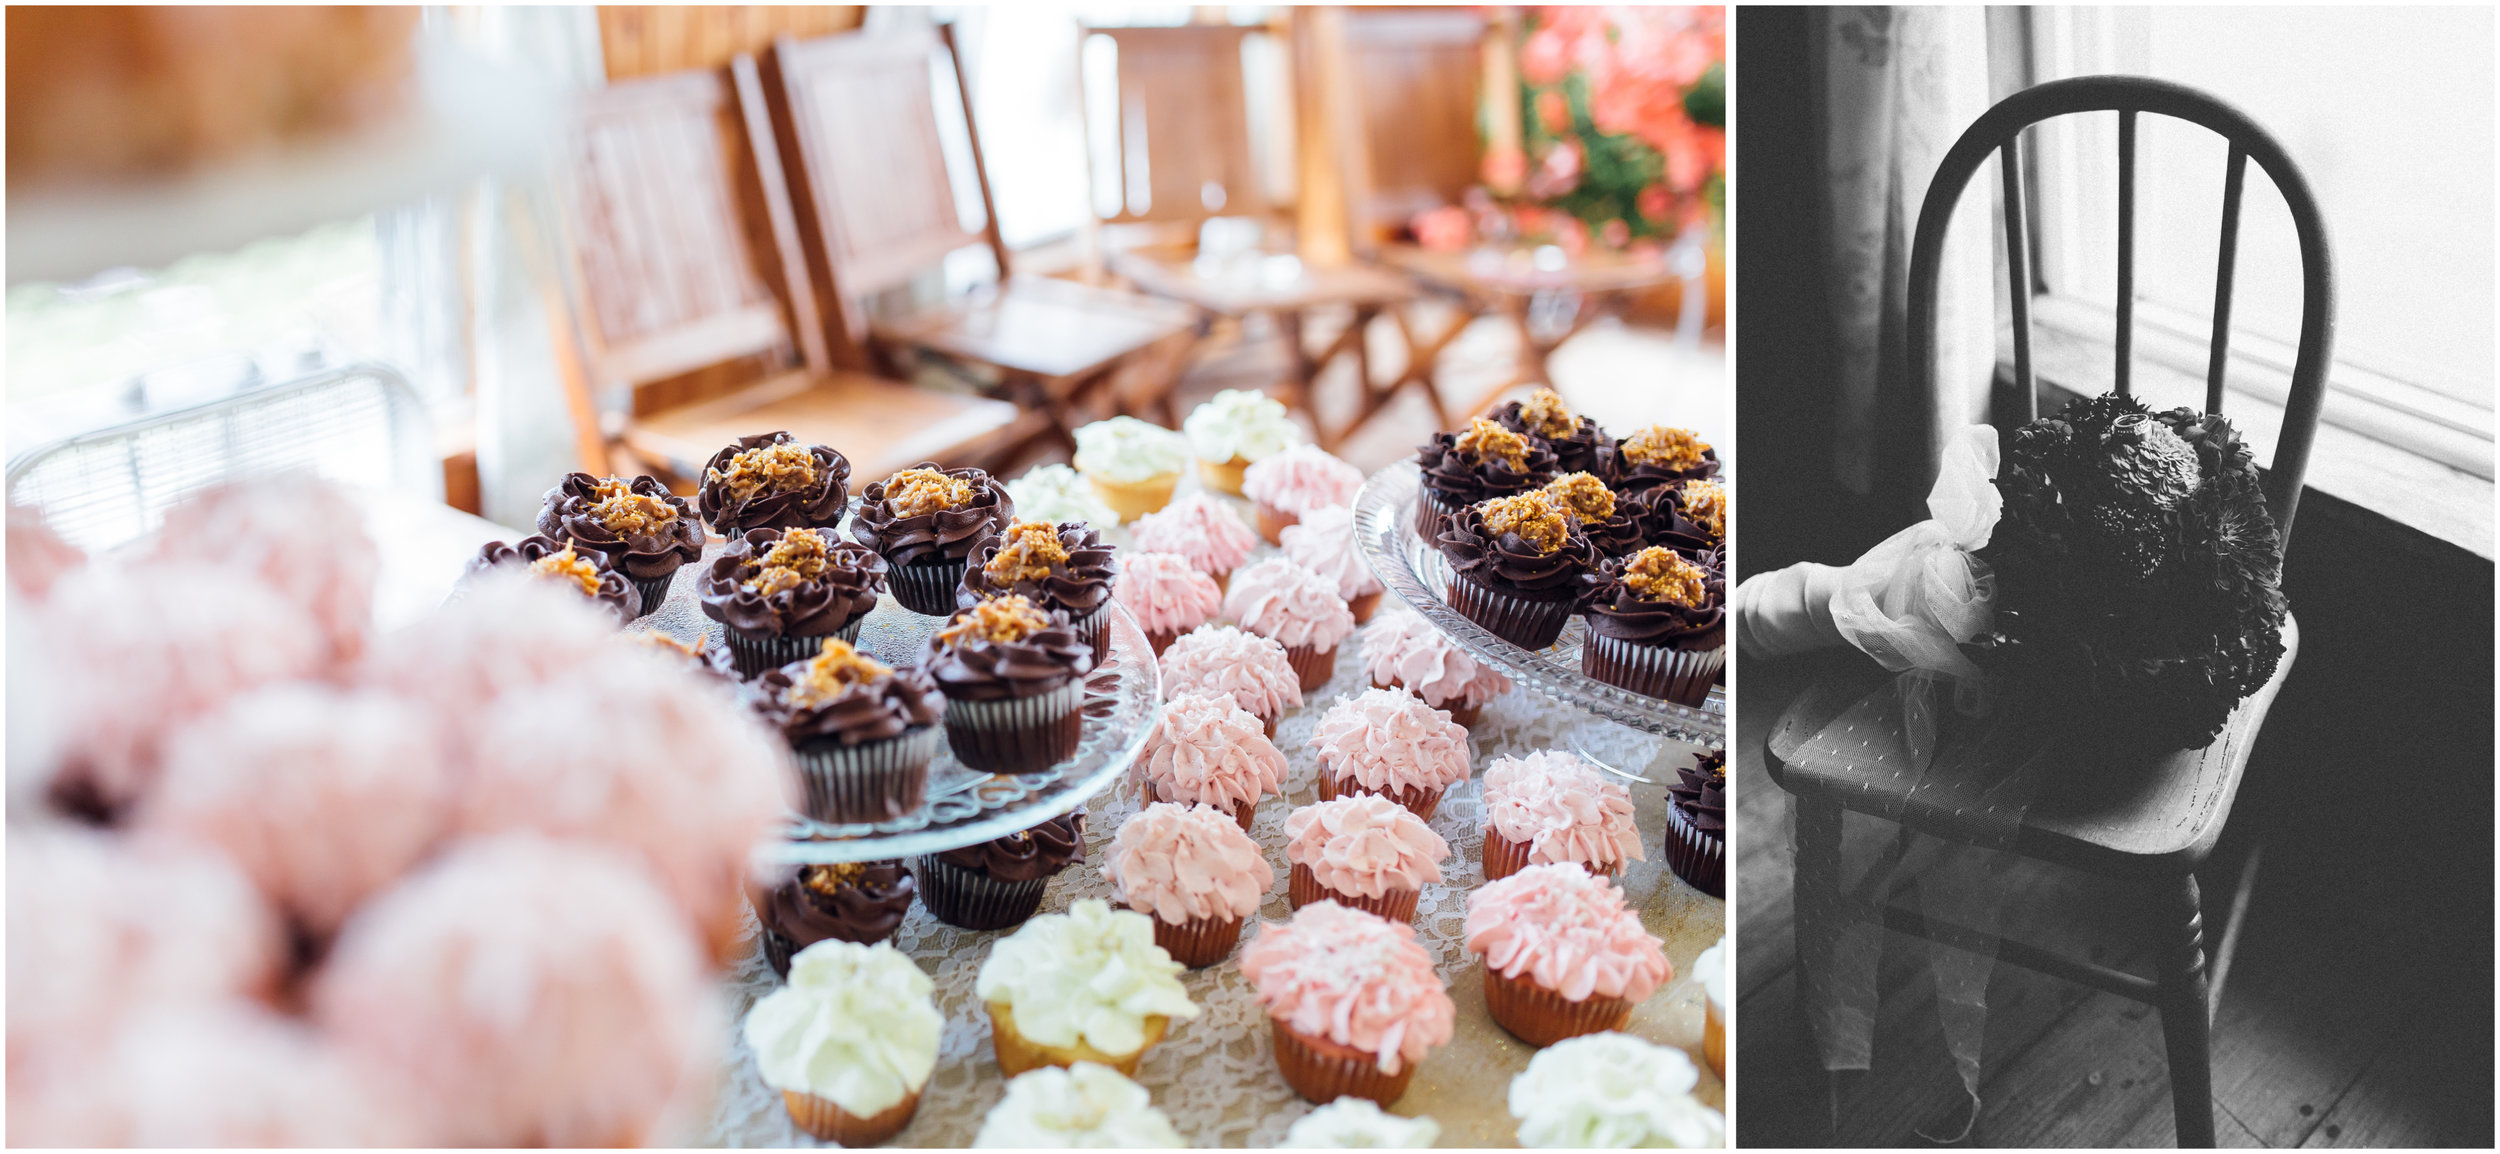 Wedding cupcakes and bouquet in Vermont